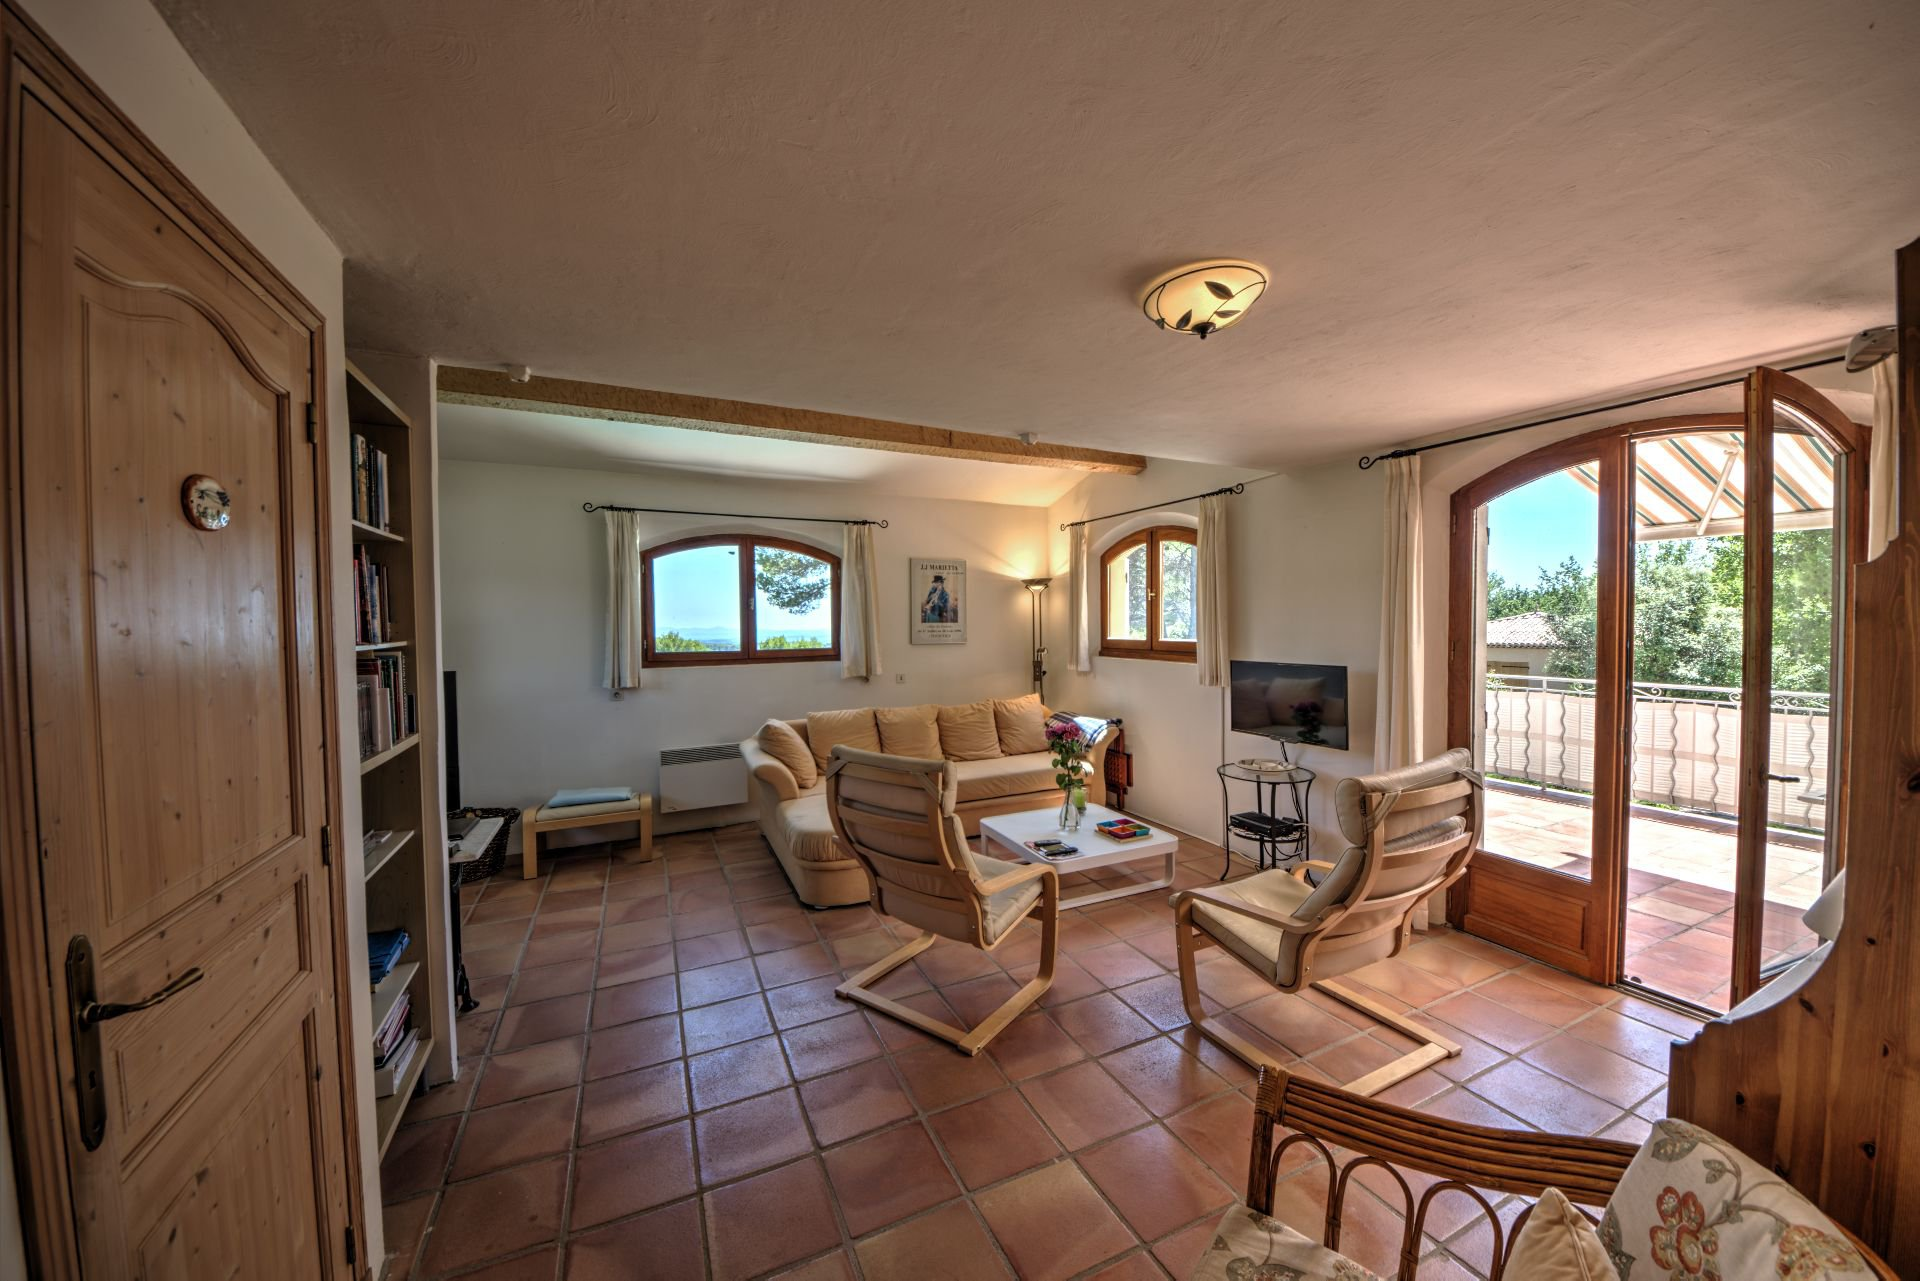 Small Living room Jolie villa of 180 sqm, three bedrooms, swimming pool, on 4000 m² closed, Tourtour, Var, Provence